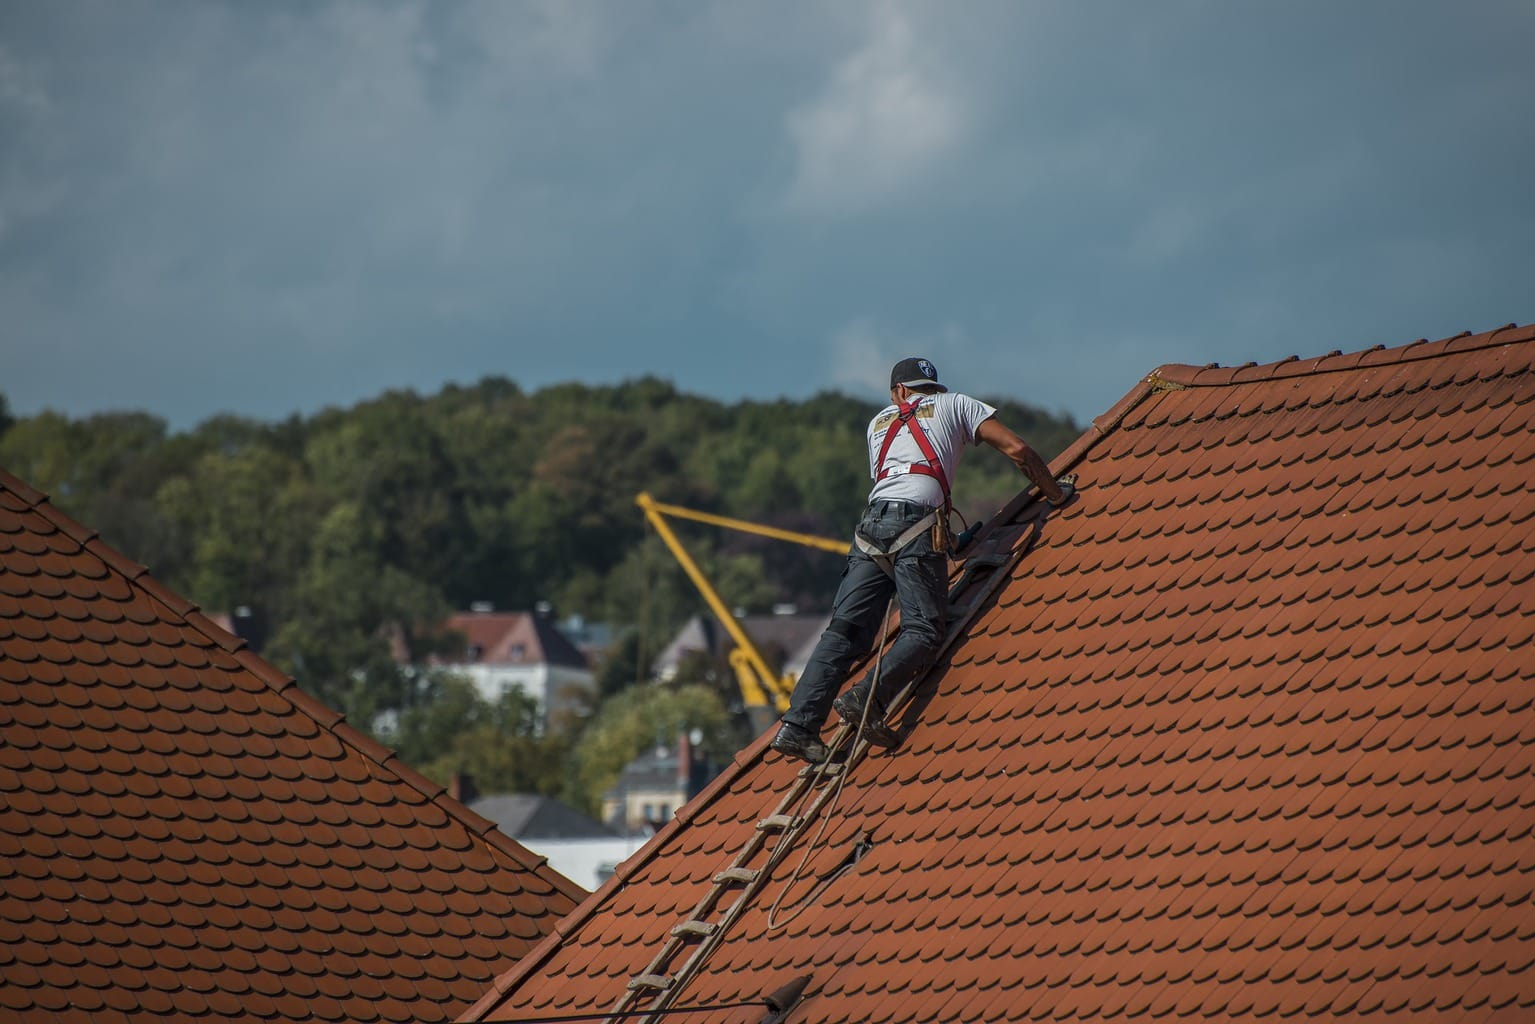 What Are The Benefits Of Hiring A Professional Roofer